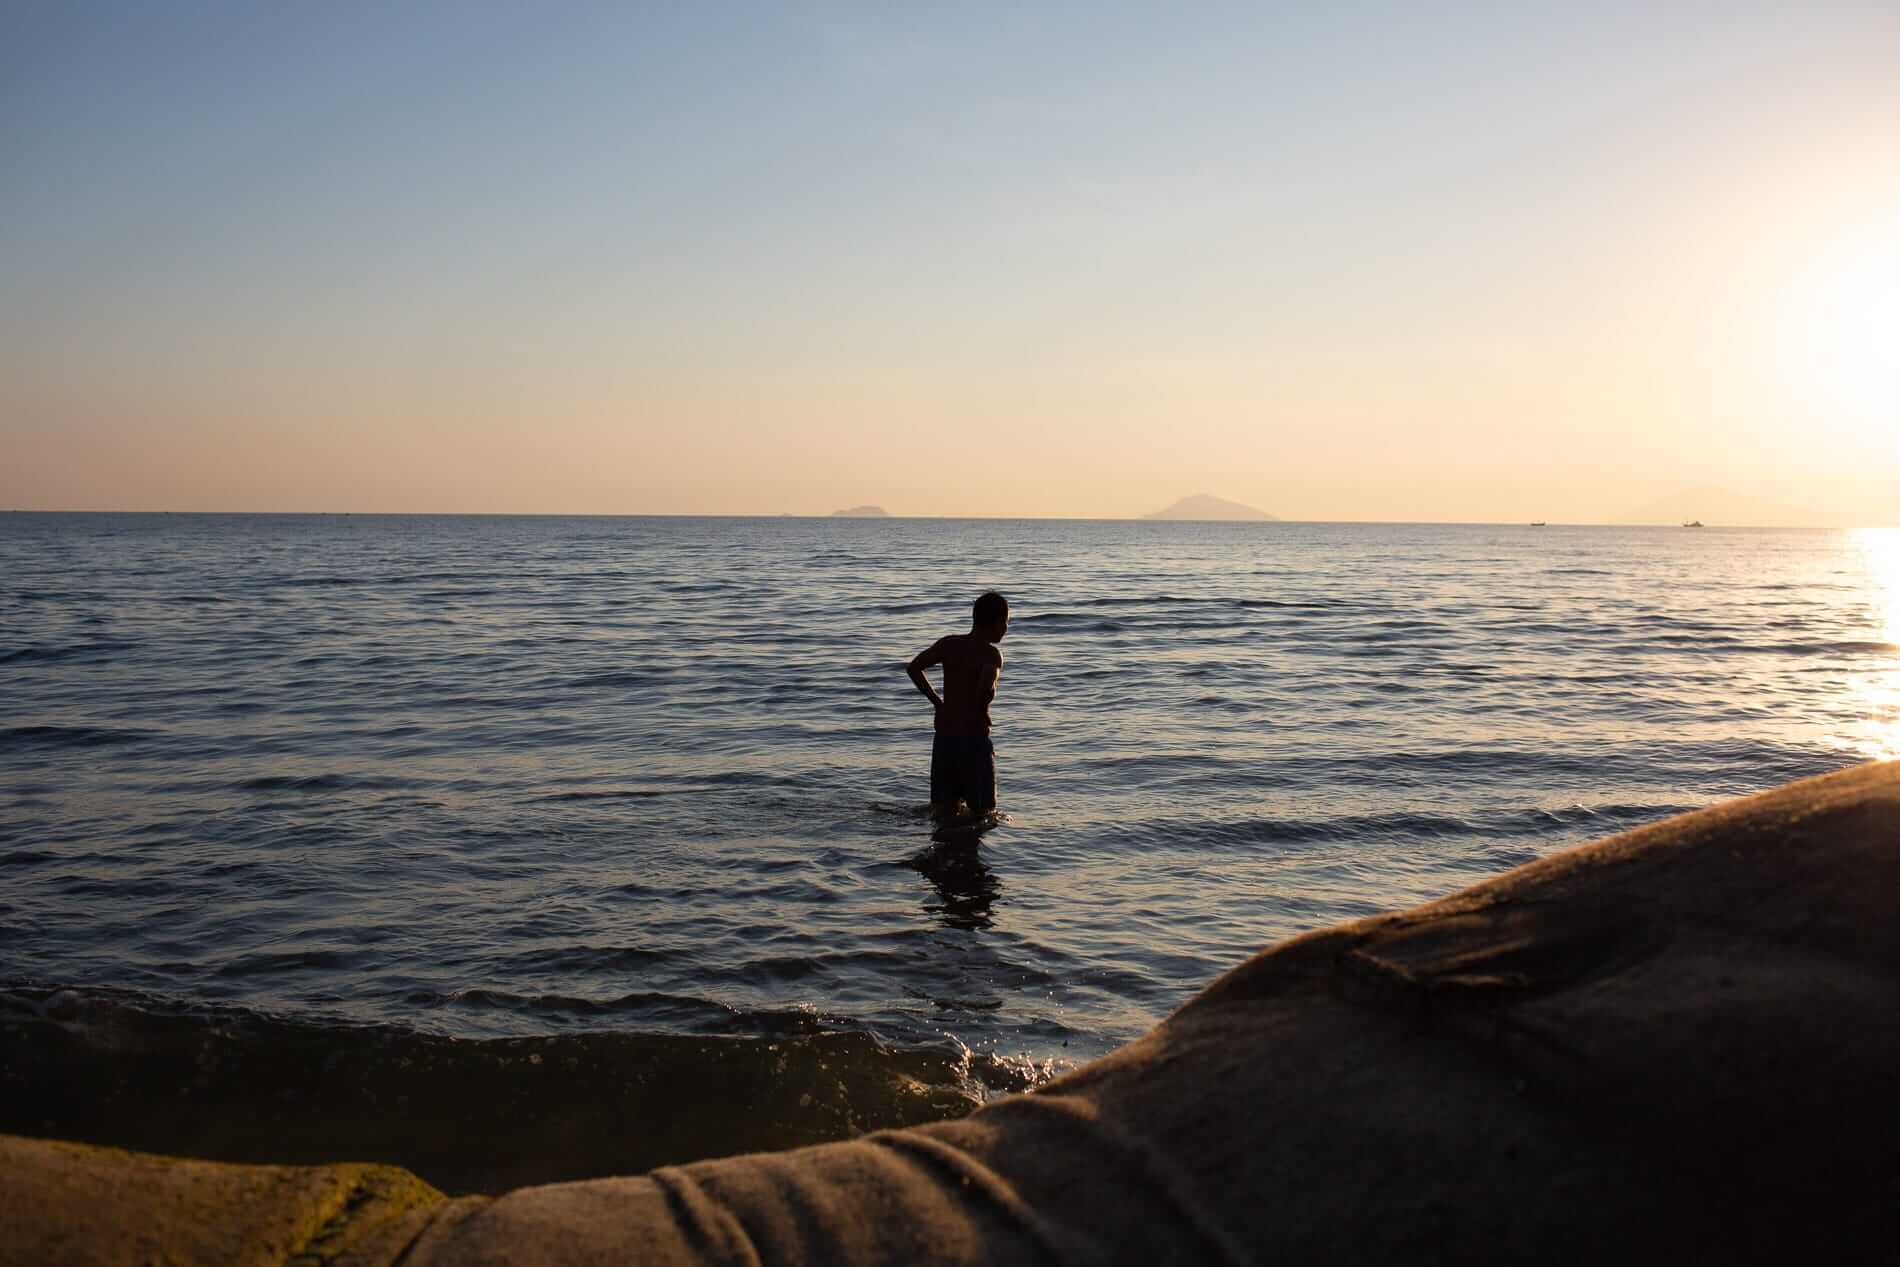 Bathing at sunrise in Hoi An